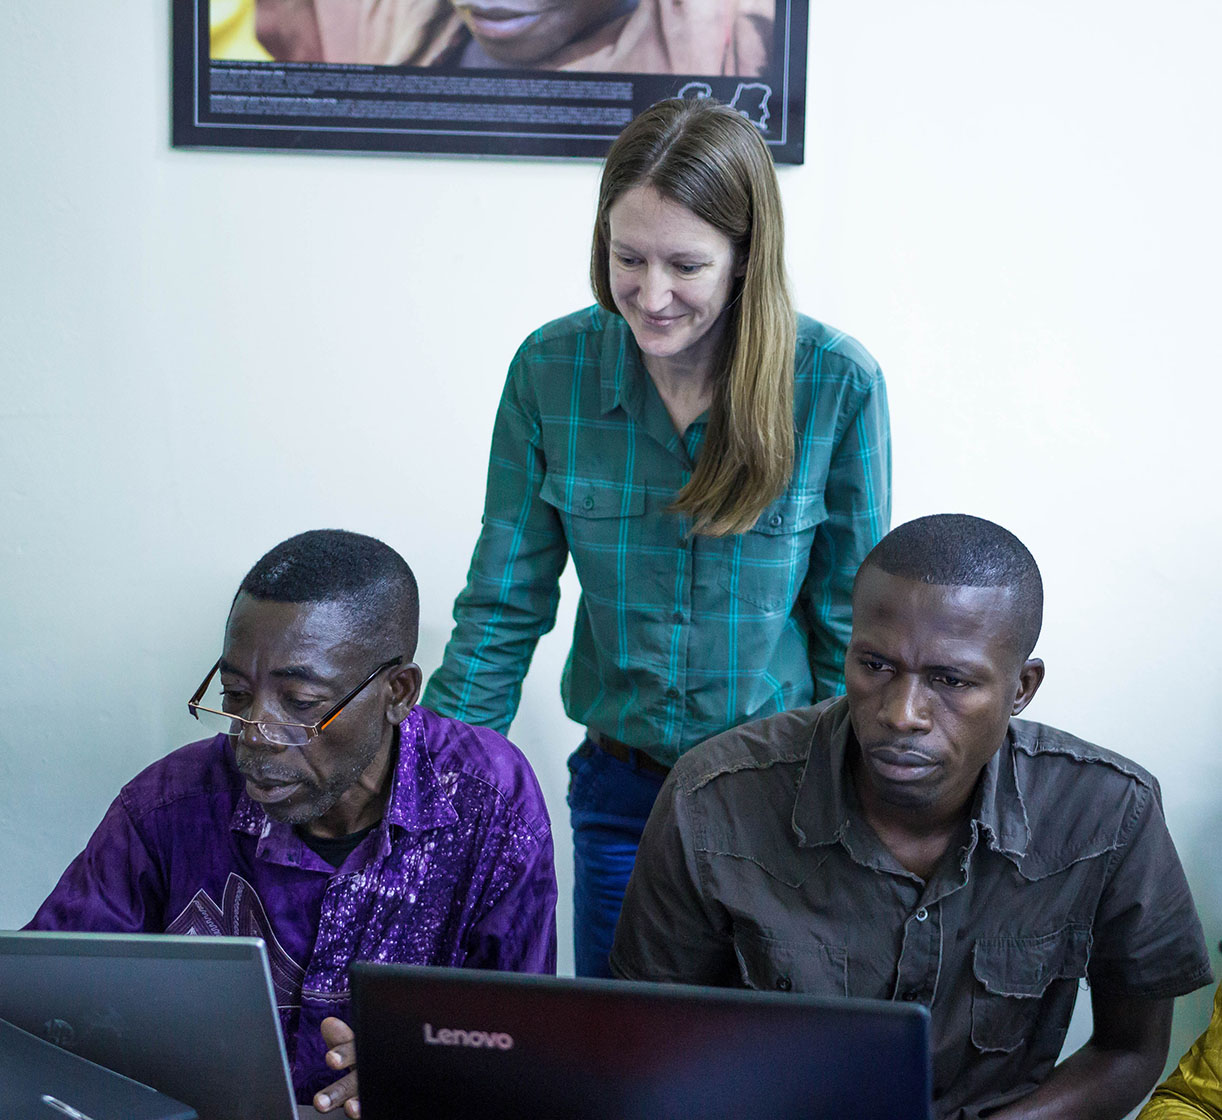 Photo: A woman stands behind two men who are working on computers.